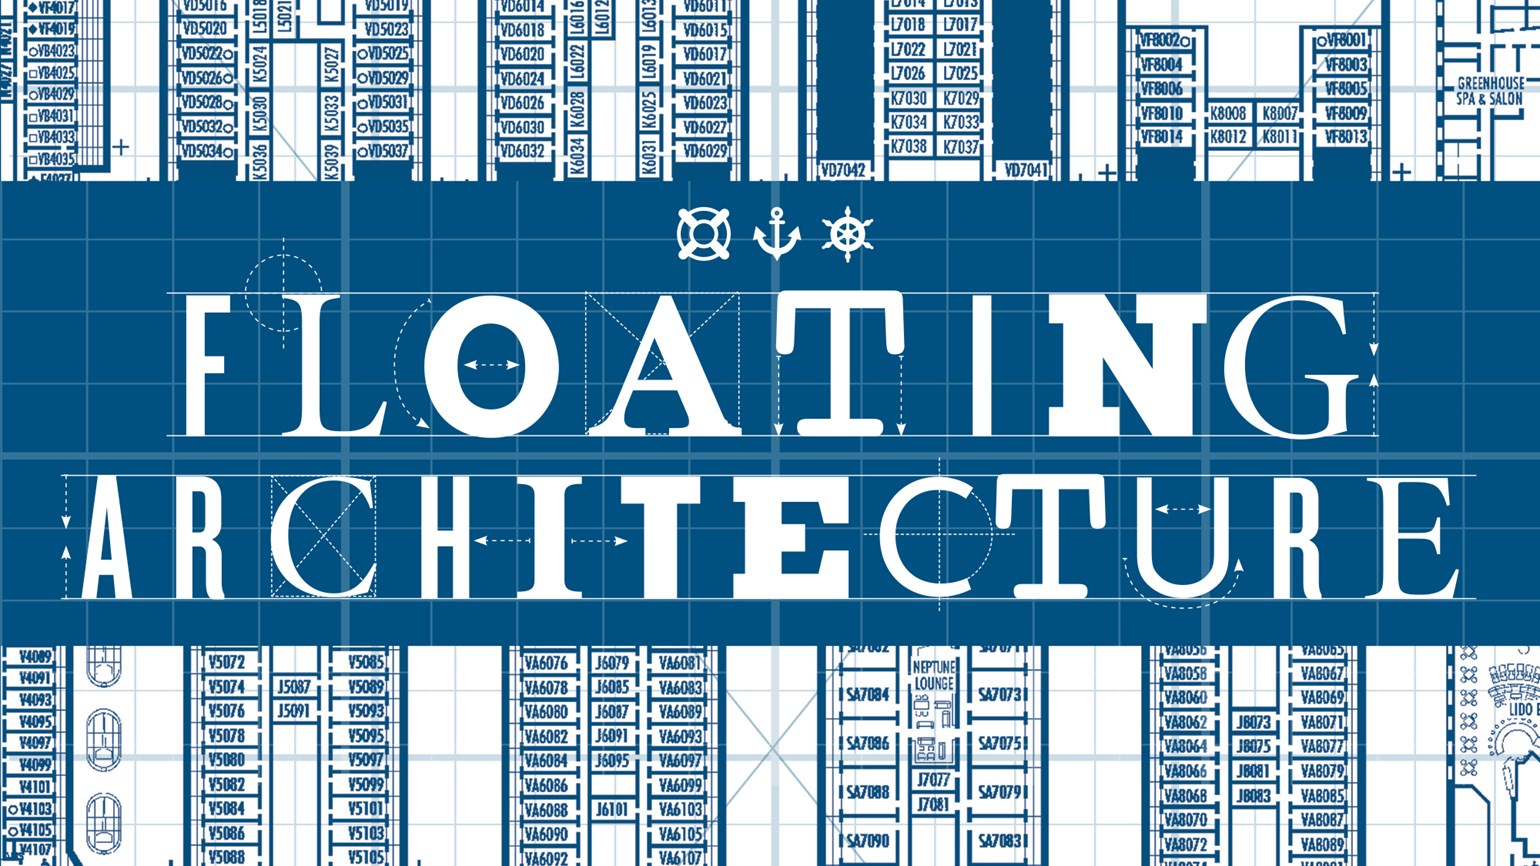 Floating architecture